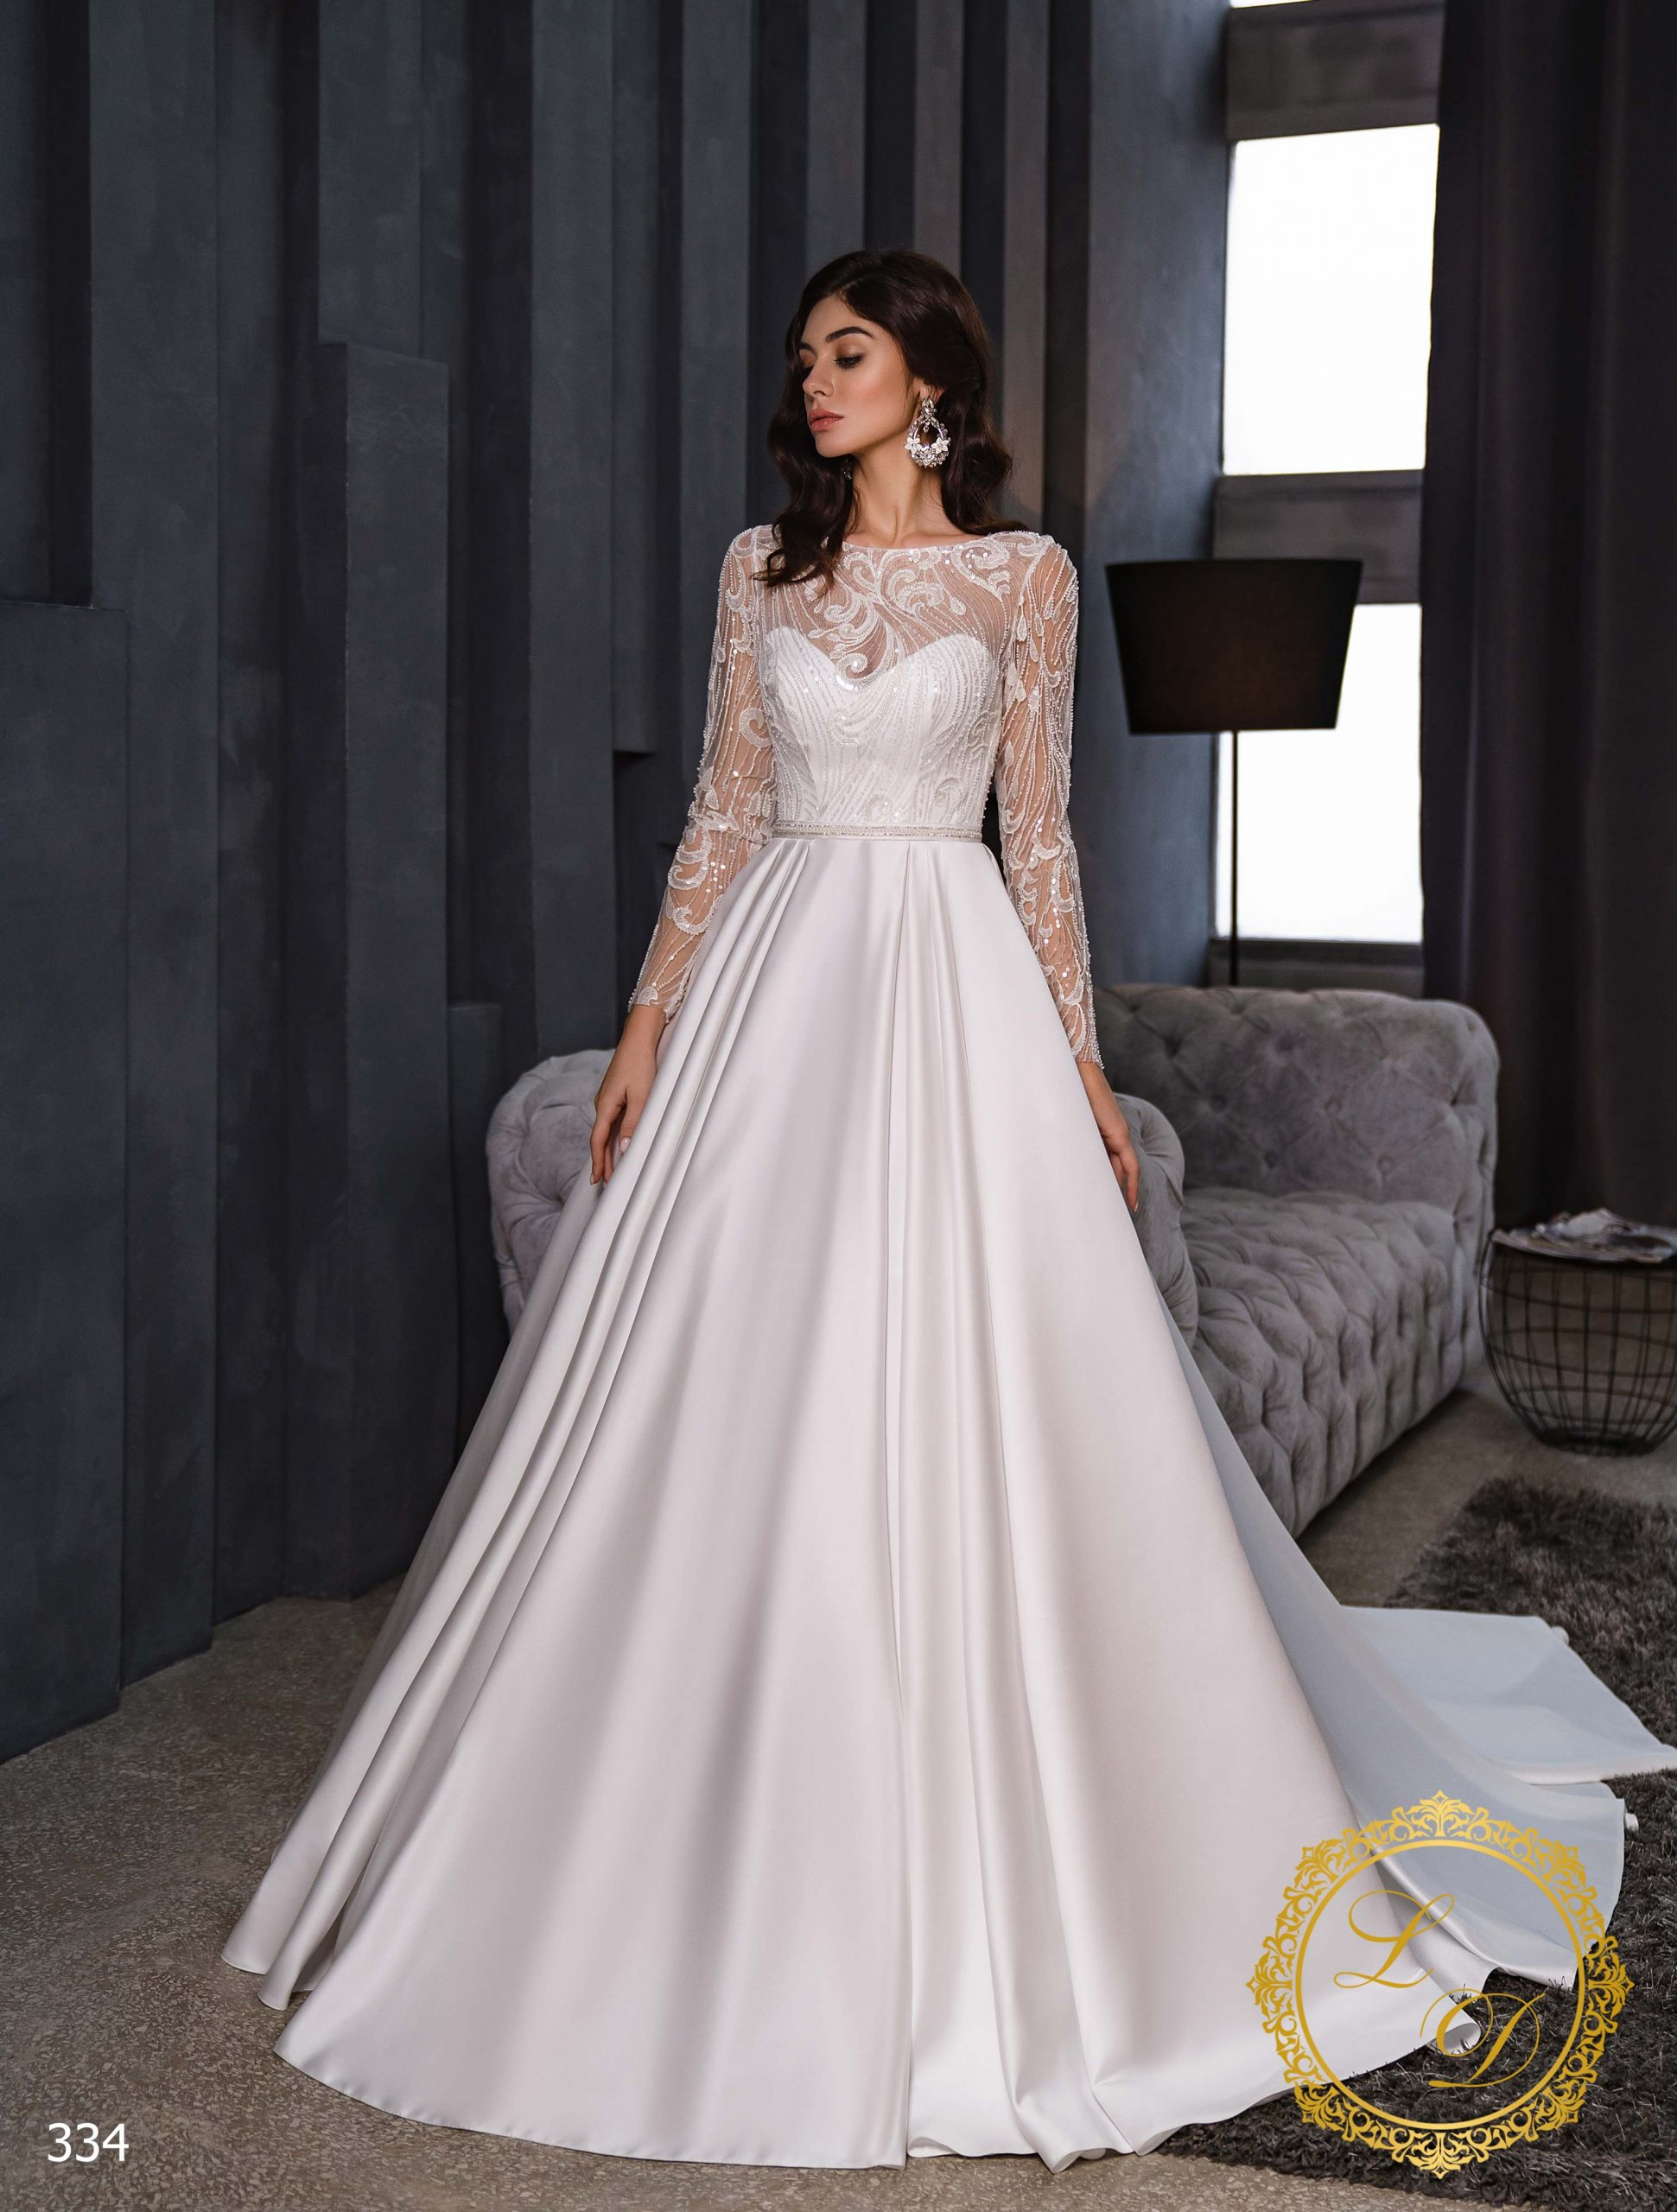 Wedding dress Lady Di 334-1